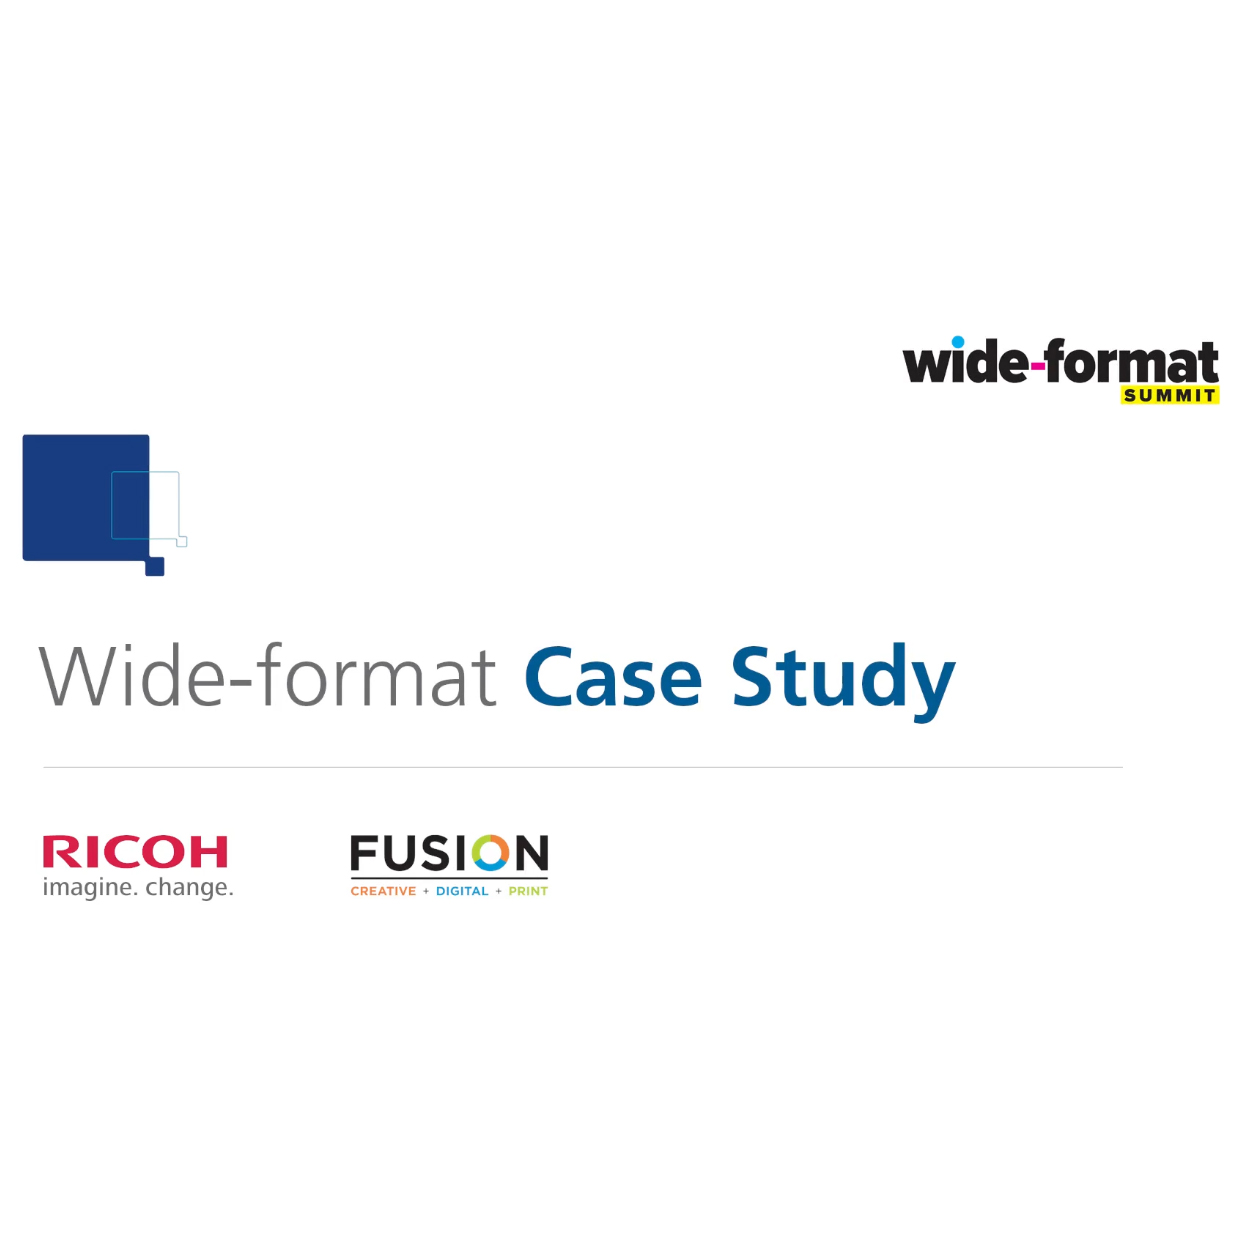 wide-format case study